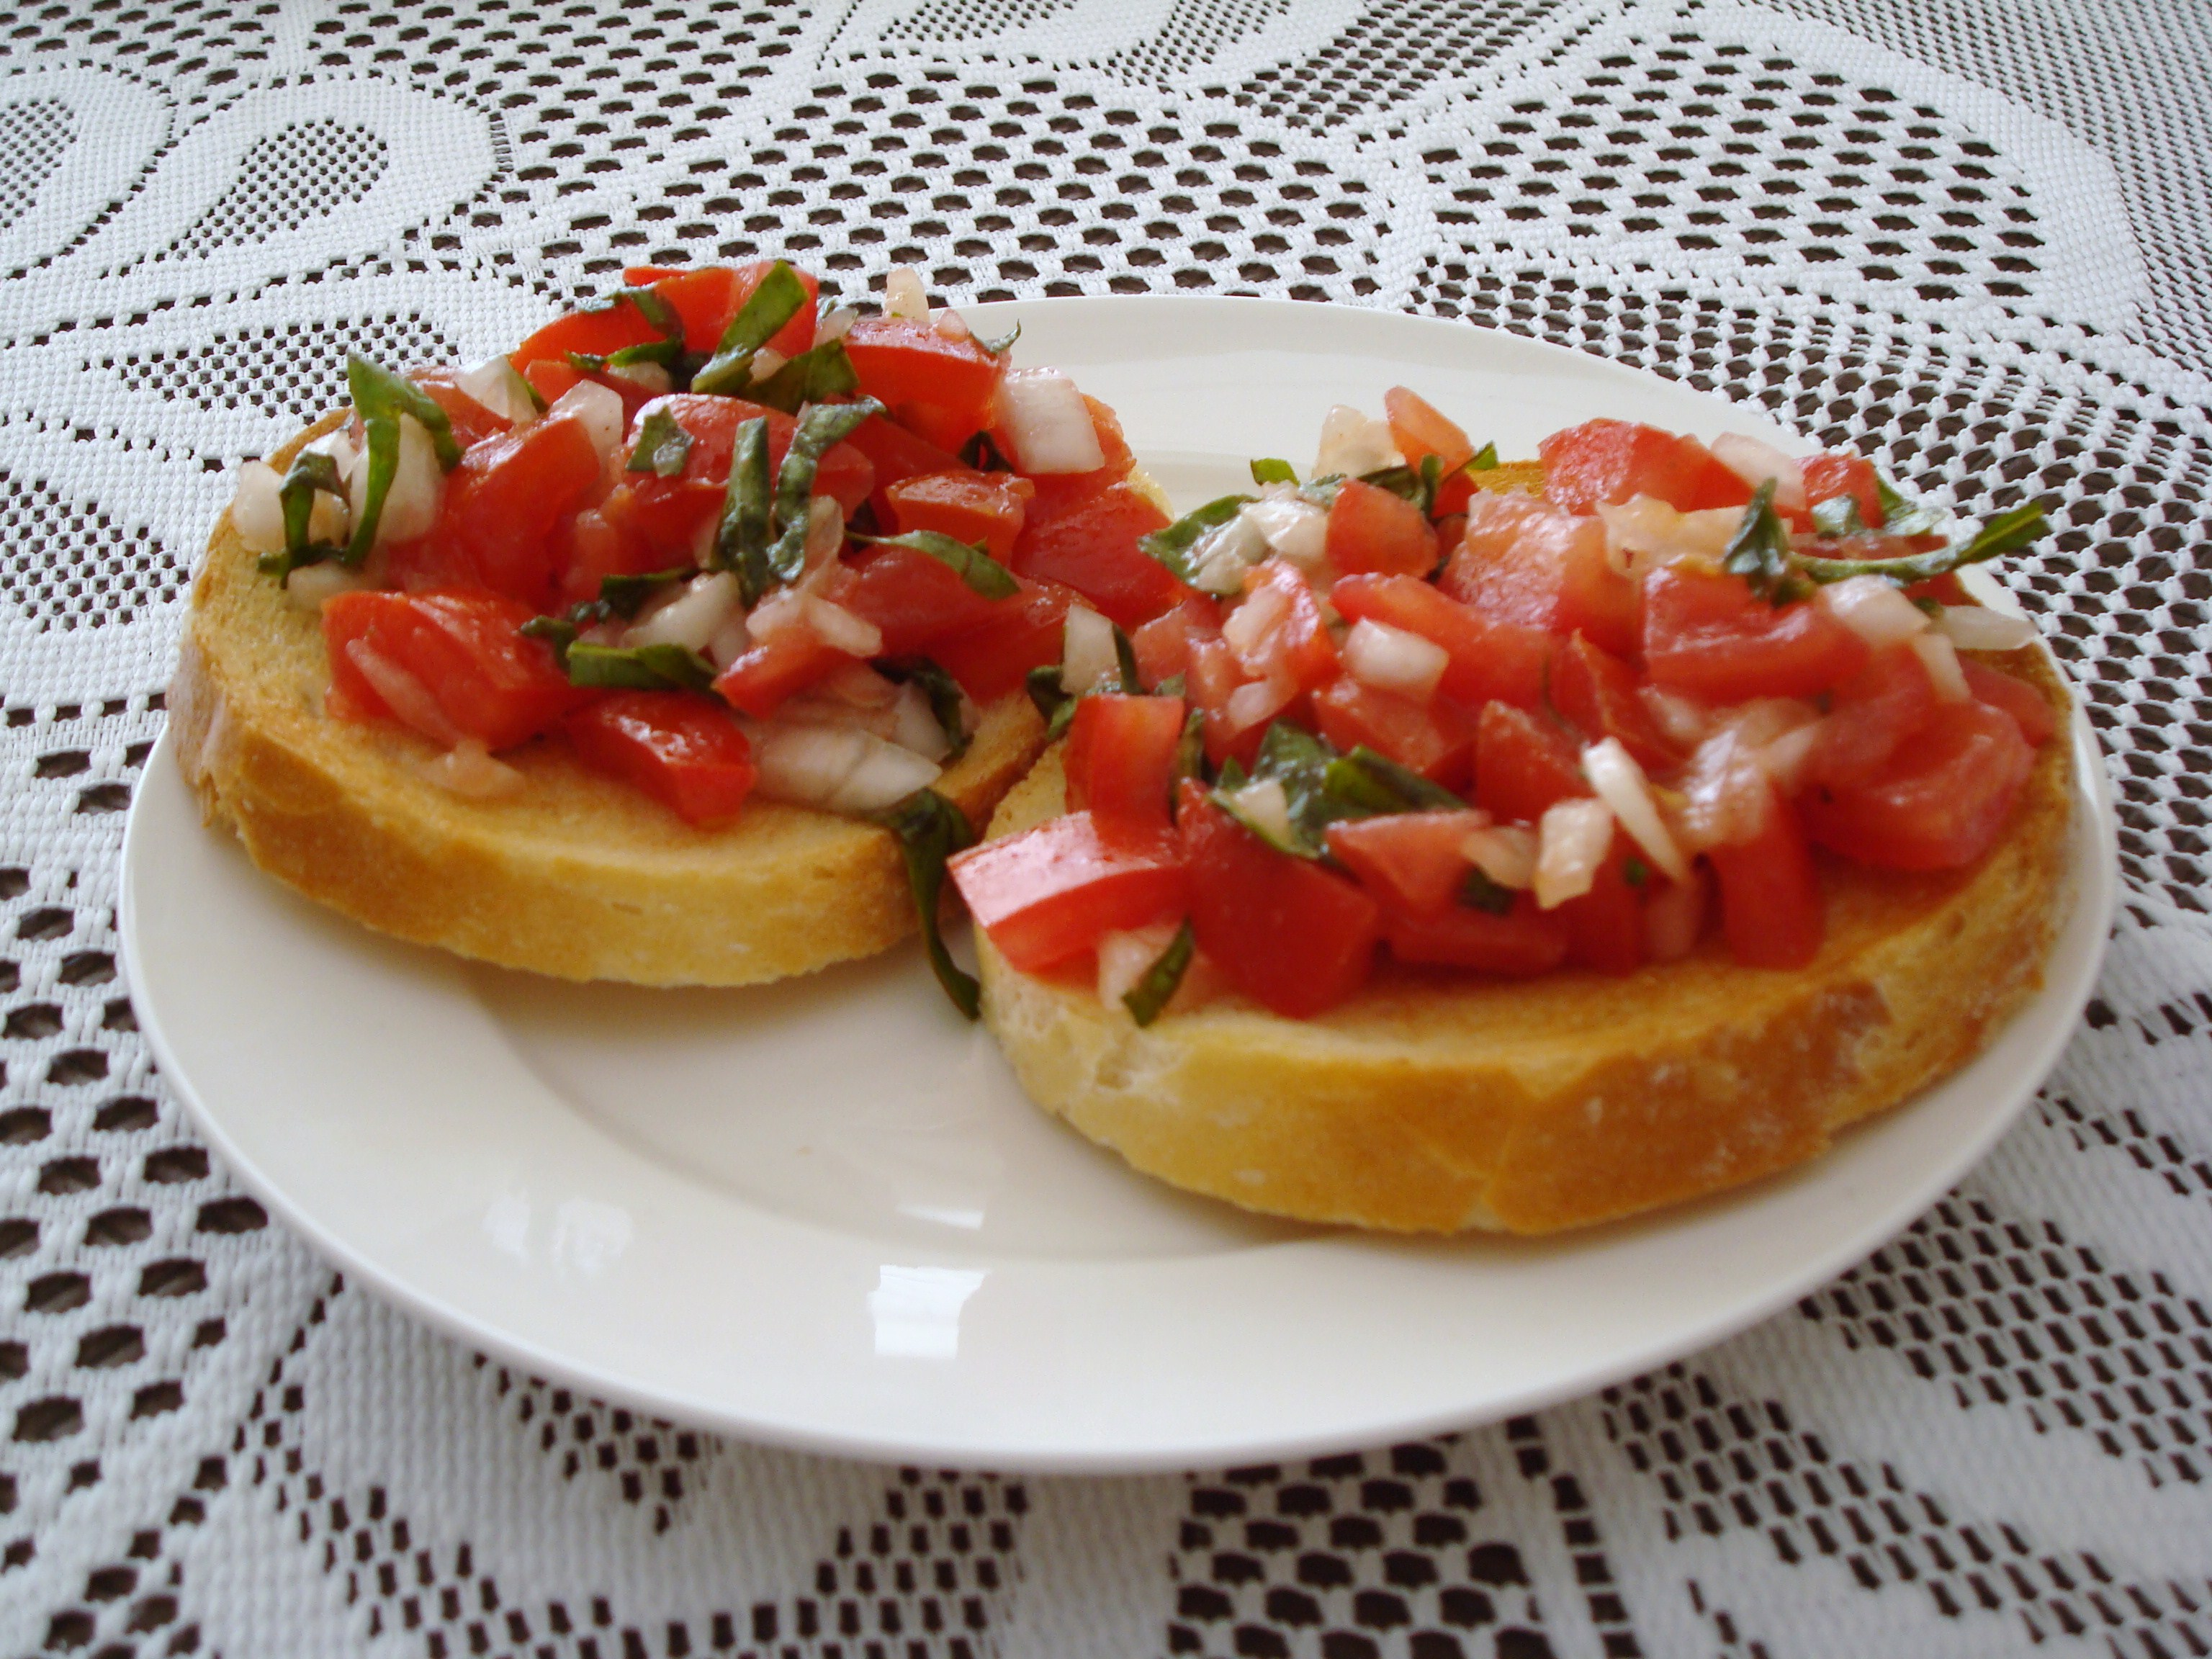 File:Tomato Bruschetta.jpg - Wikipedia, the free encyclopedia